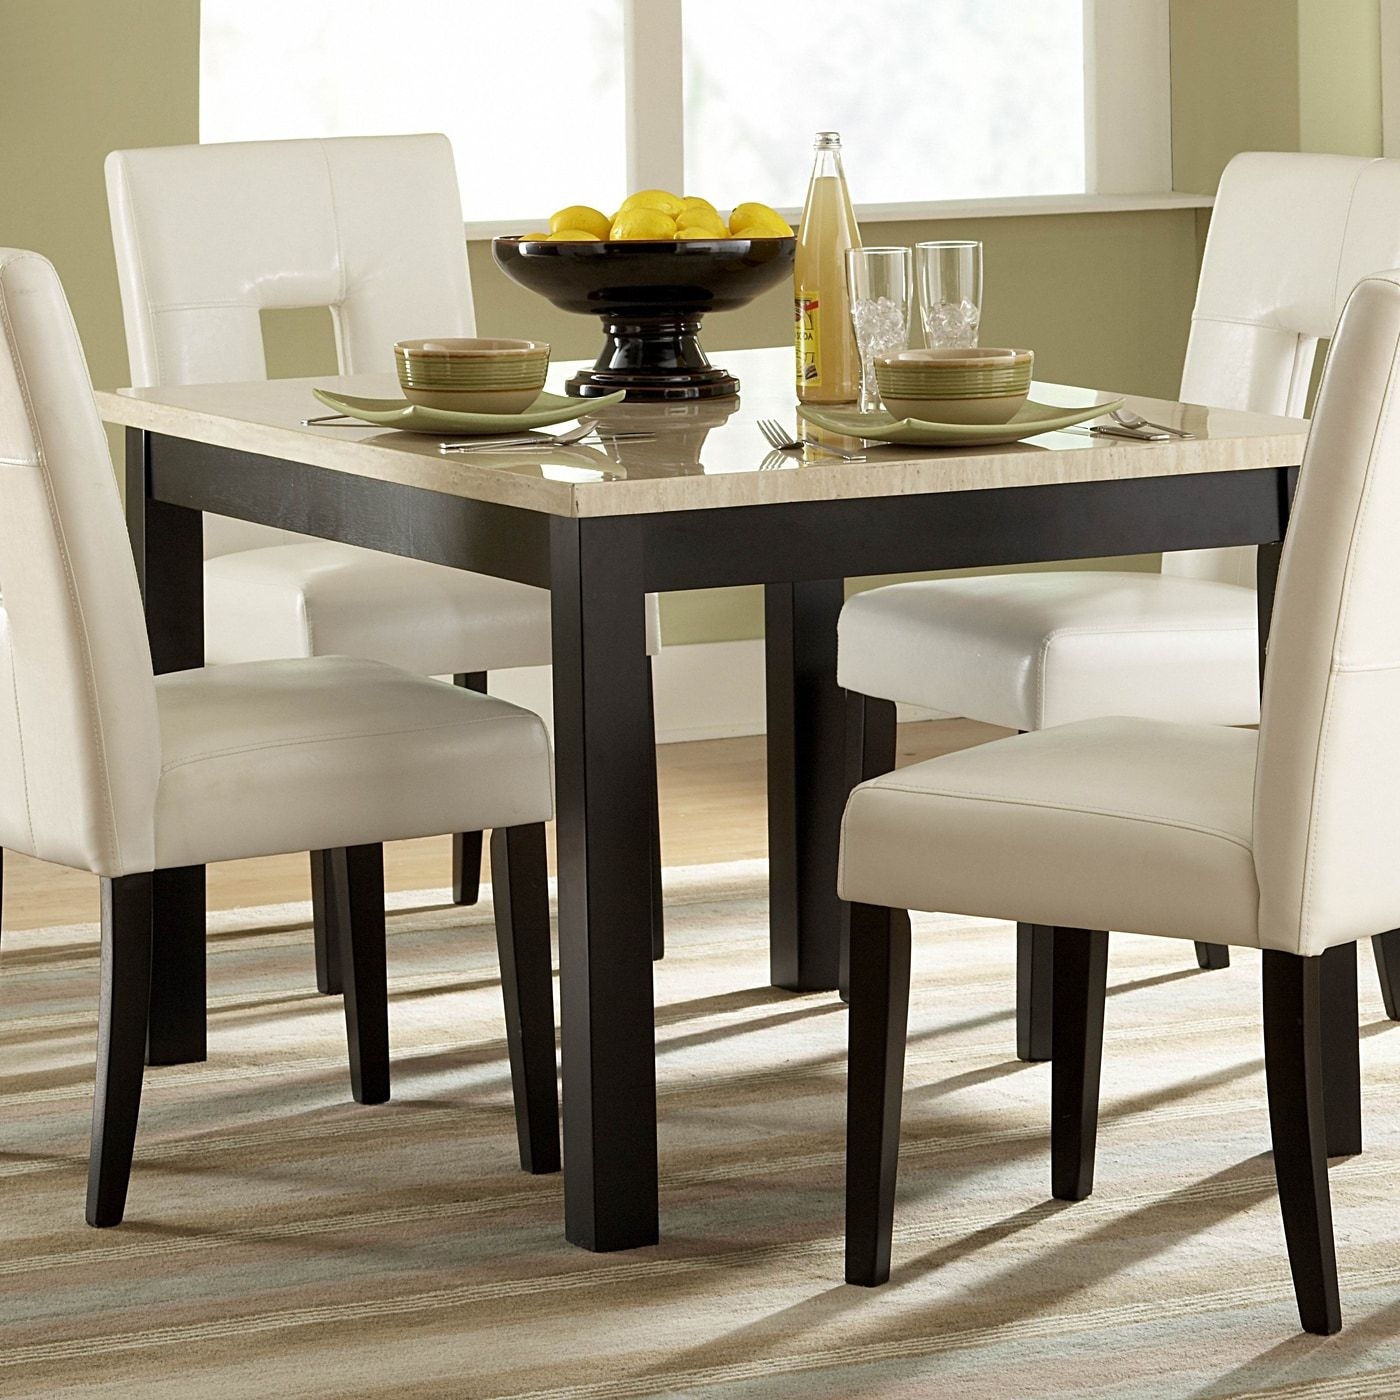 Shop homelegance 3270 48 archstone faux marble dining table at the mine browse our dining tables all with free shipping and best price guaranteed